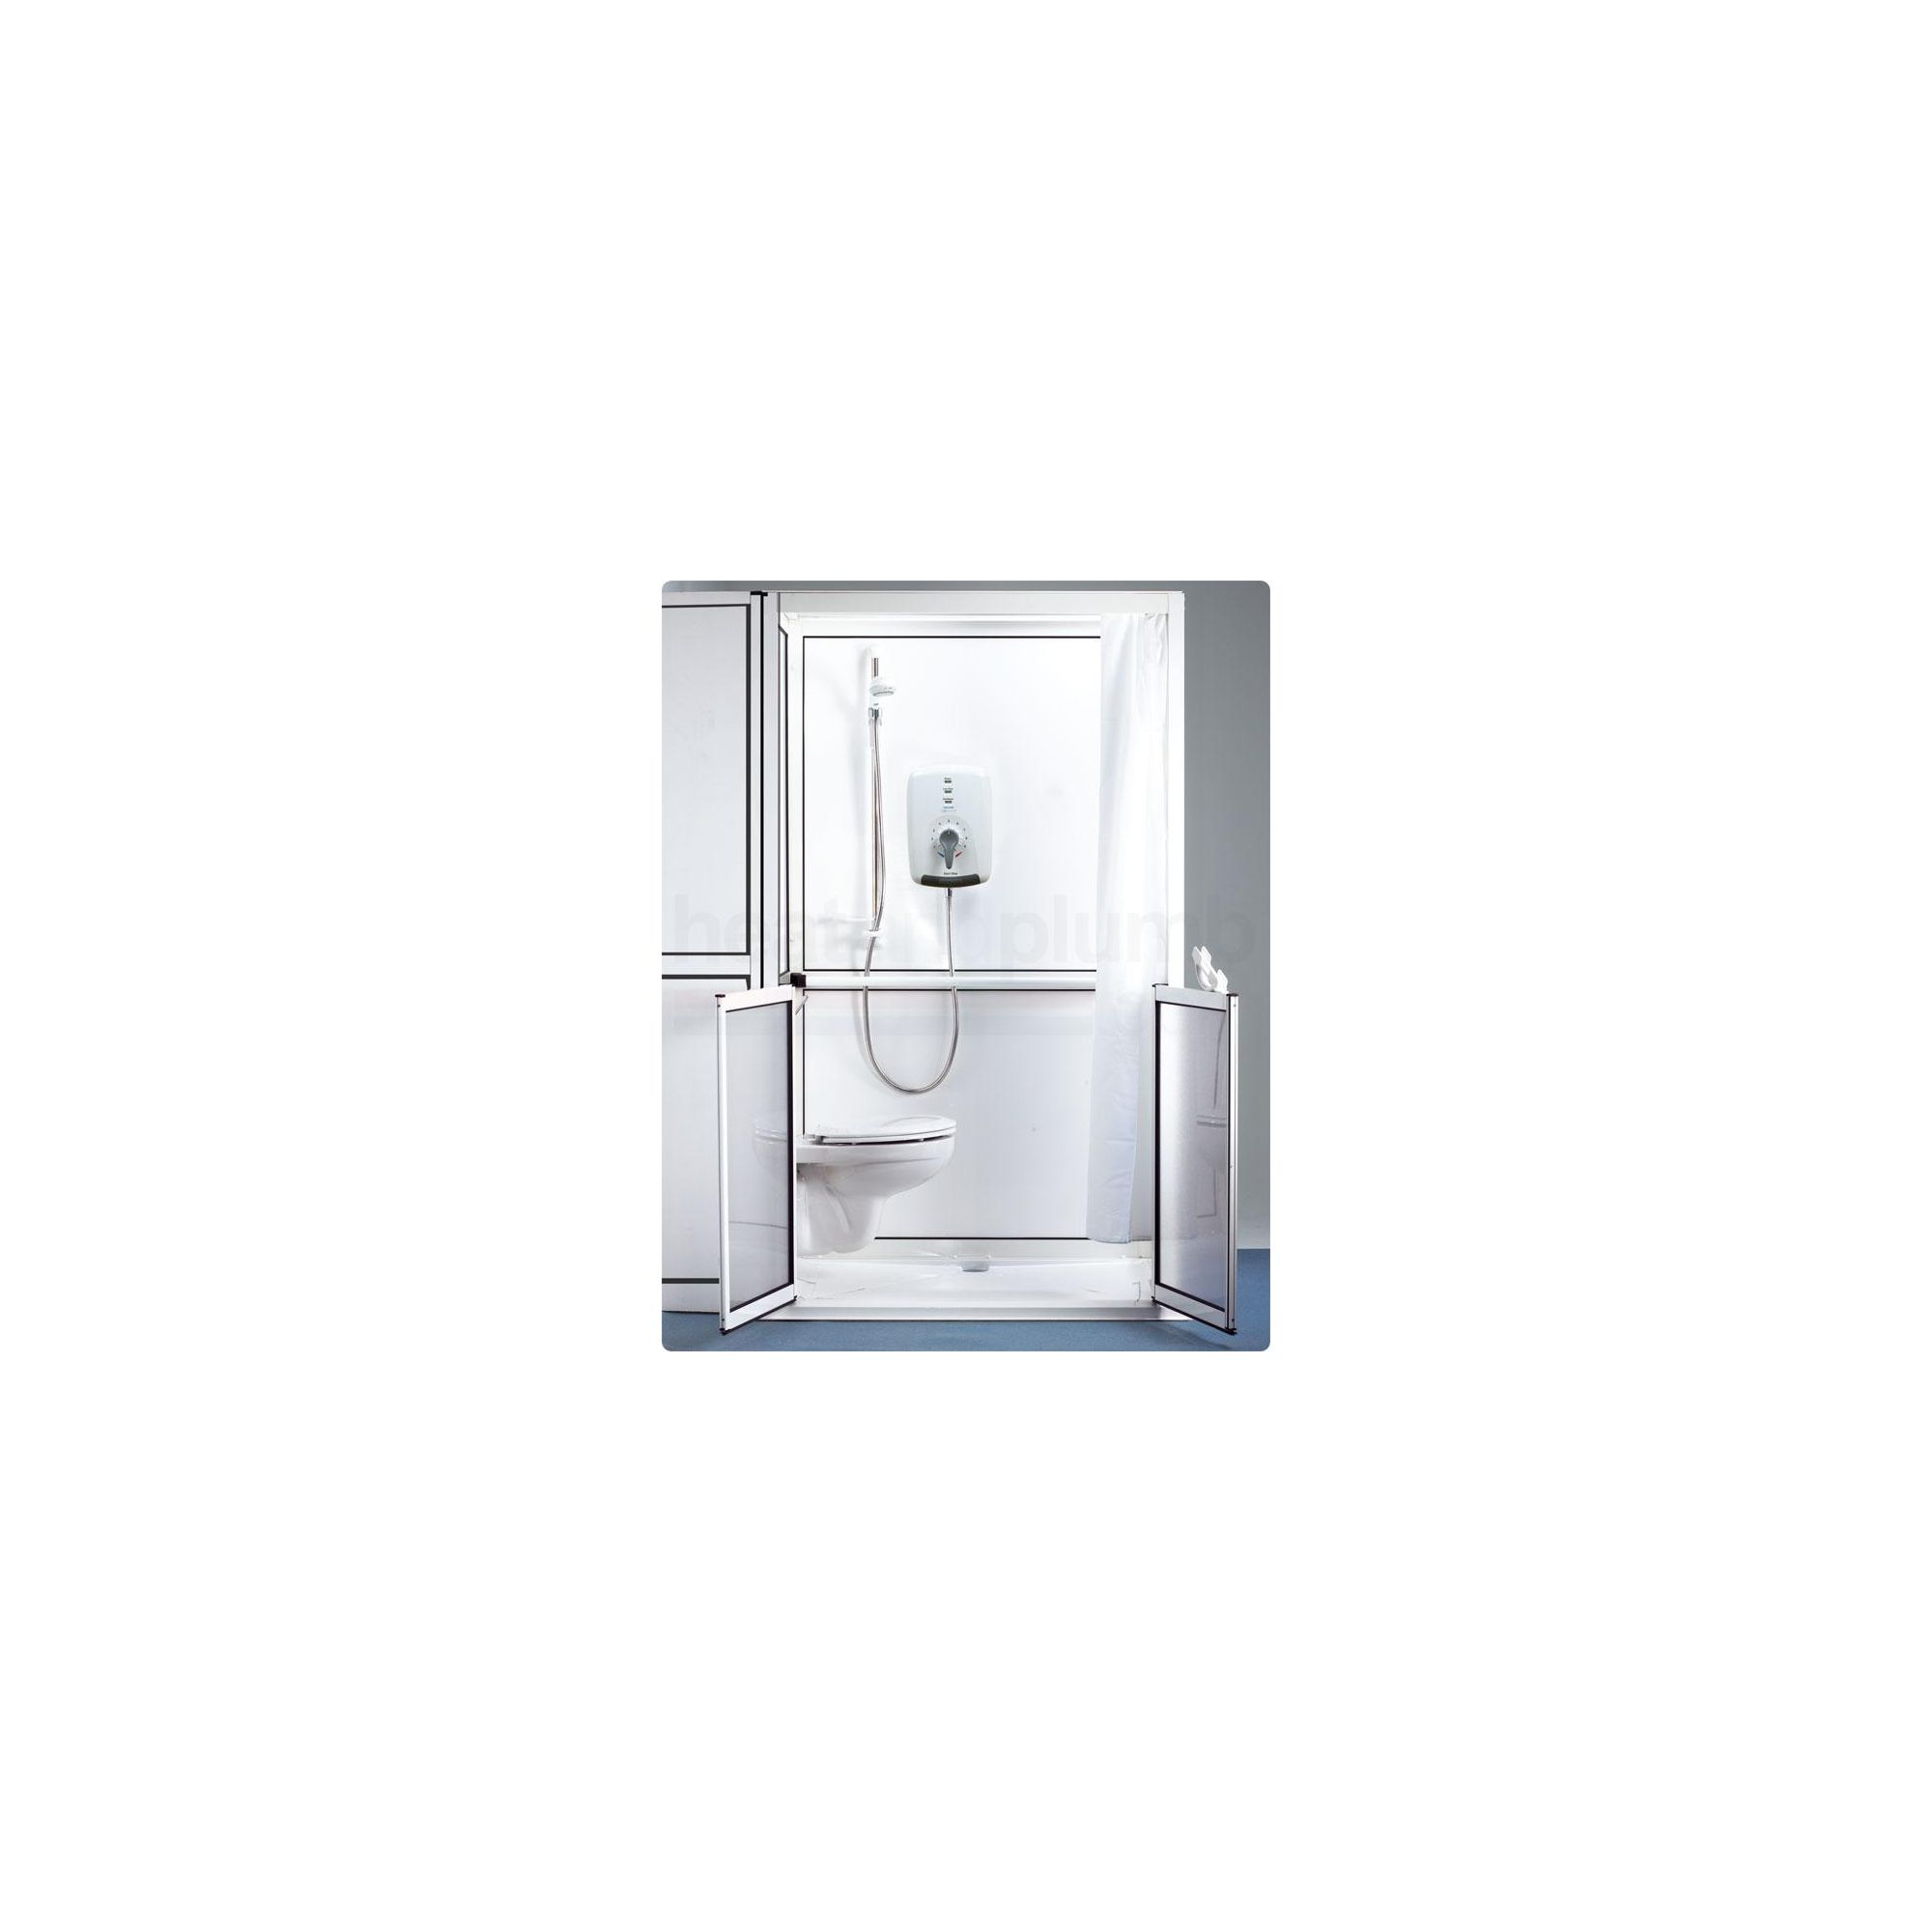 AKW ShowerLoo Shower Cubicle 1100mm x 800mm at Tesco Direct